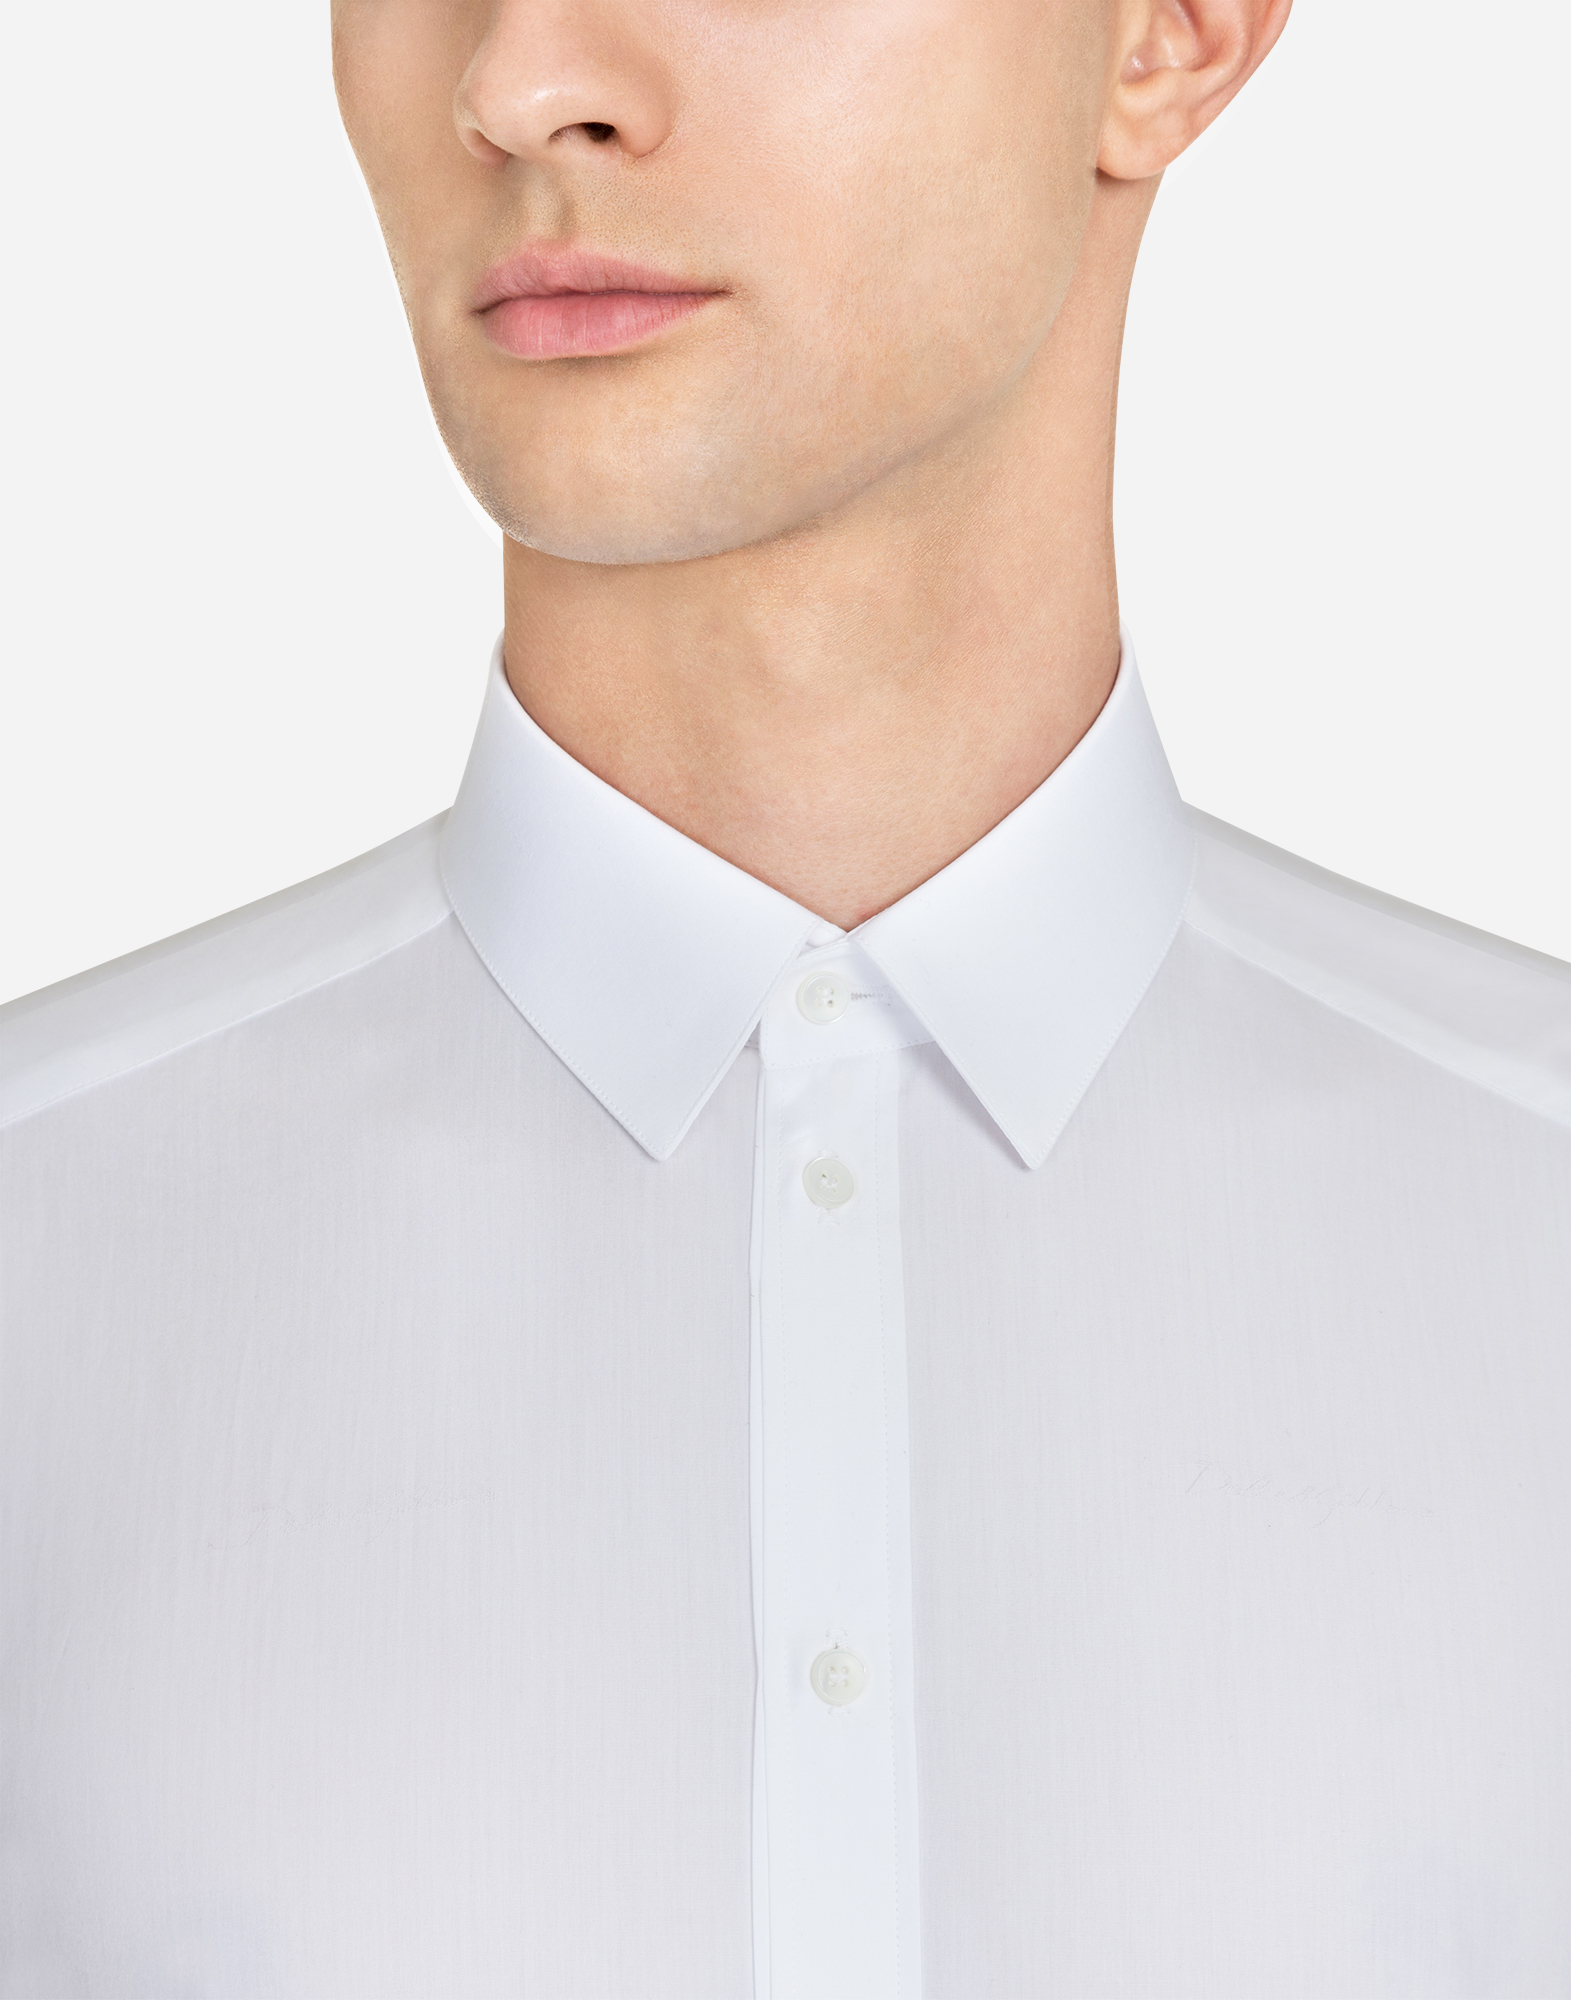 MARTINI FIT SHIRT IN JACQUARD COTTON